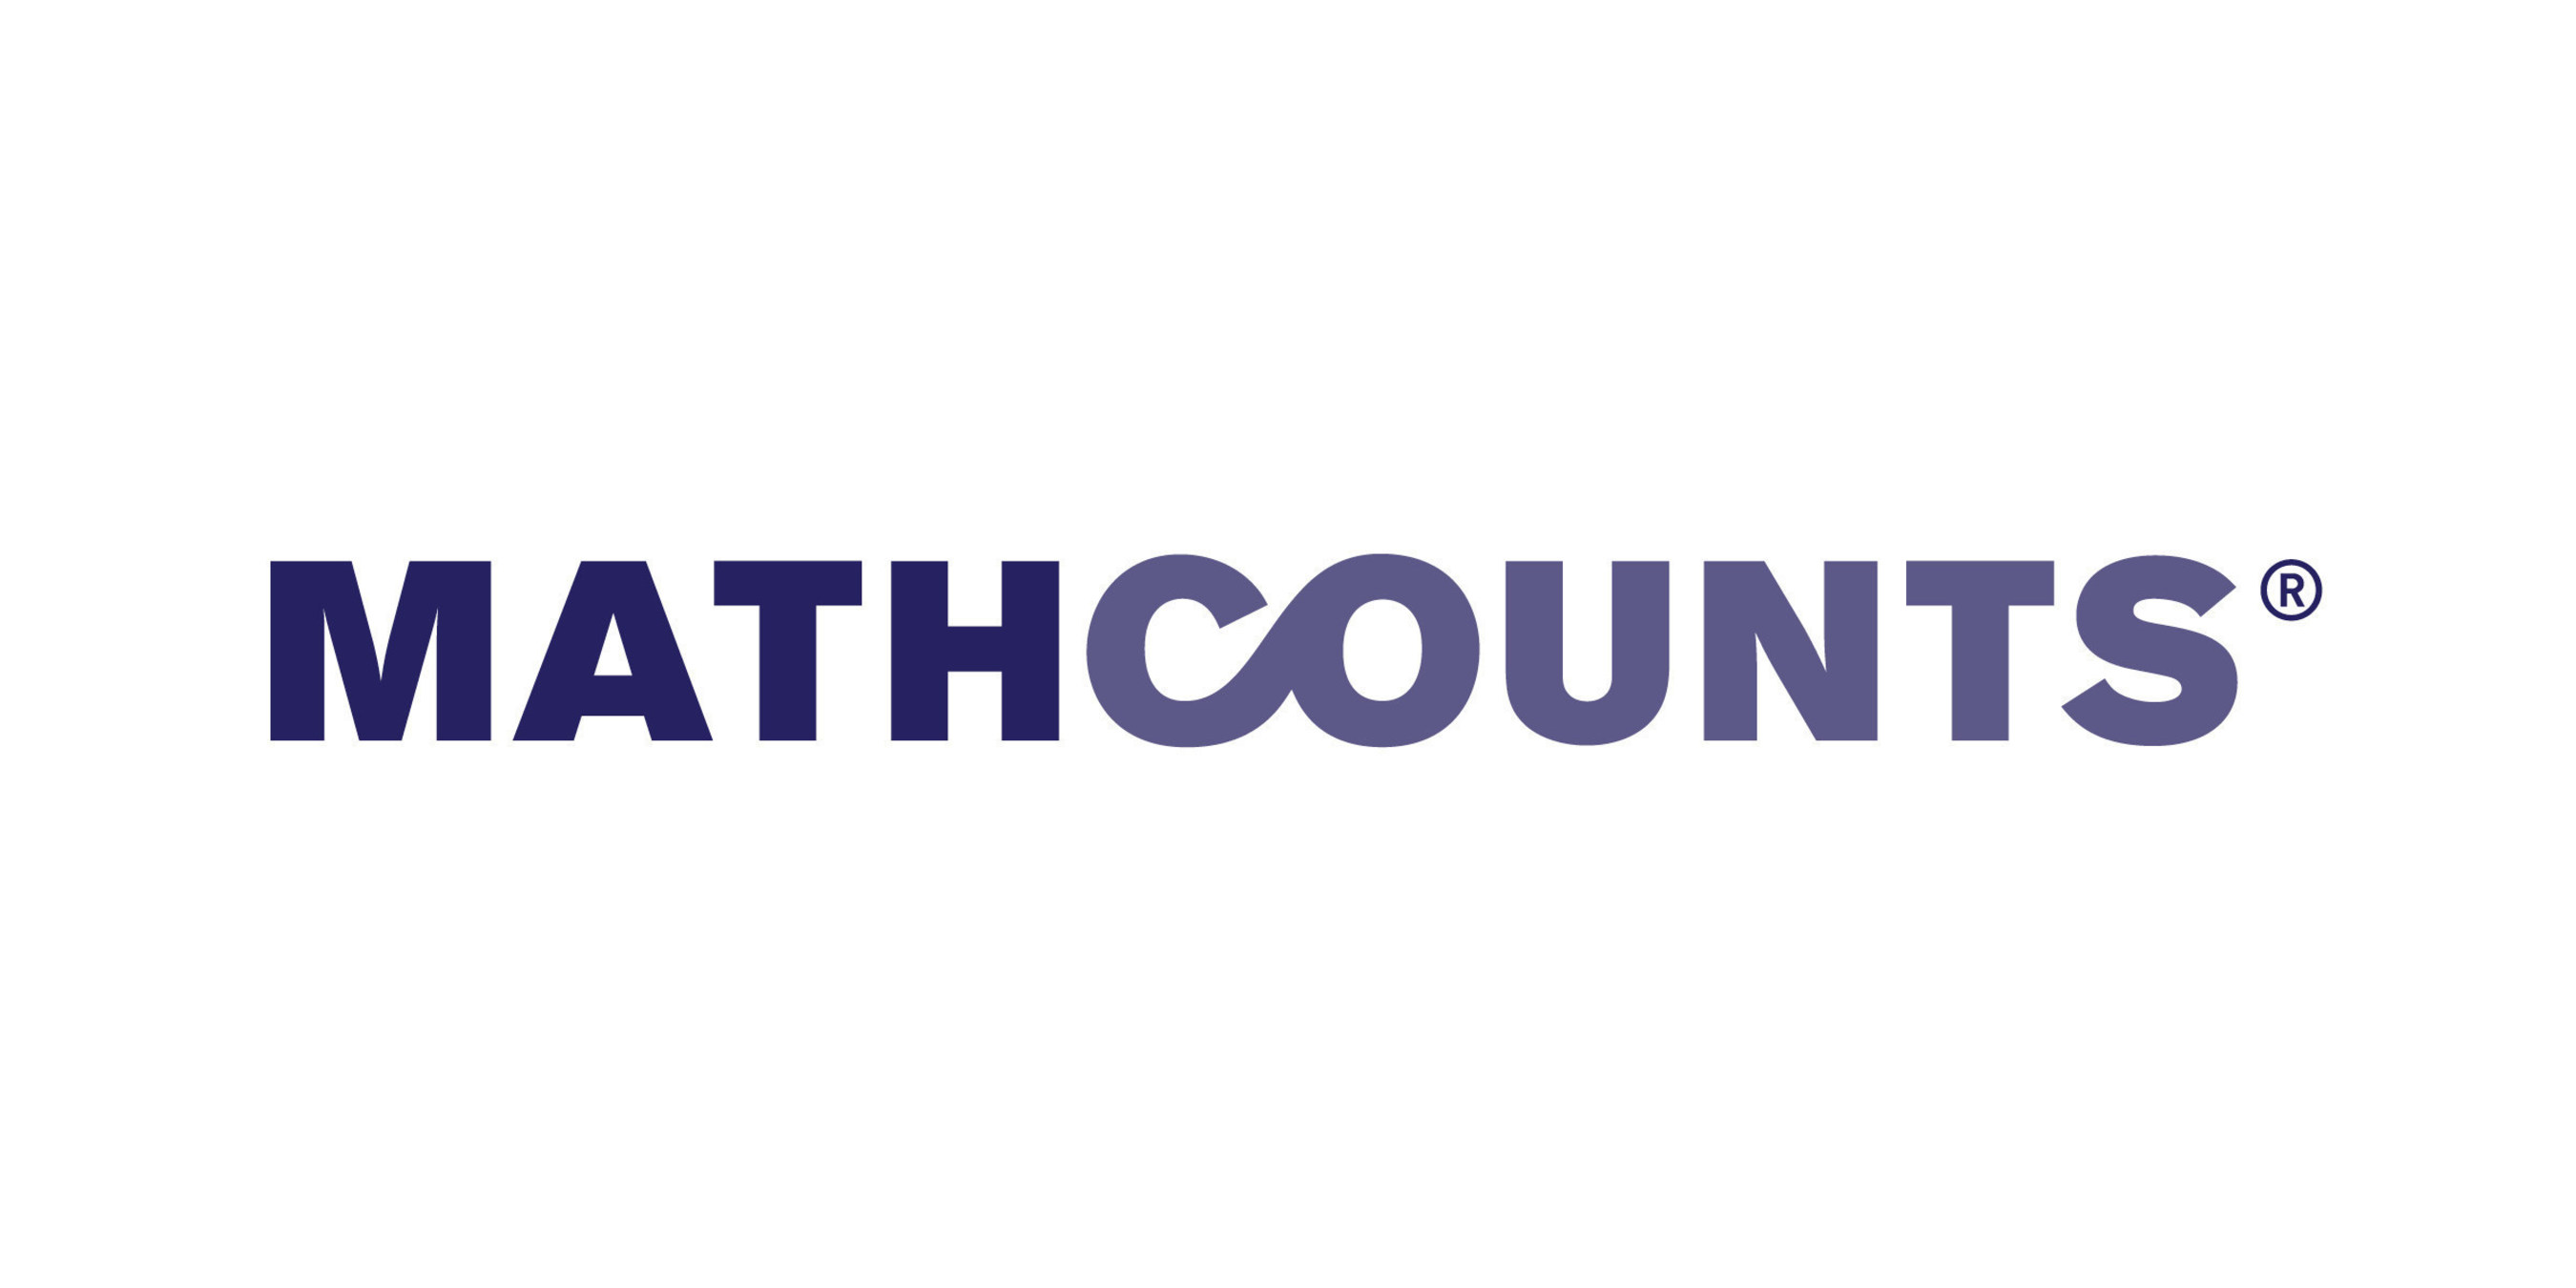 New Mexico Mathletes' compete at the 2016 Raytheon MATHCOUNTS' National Competition